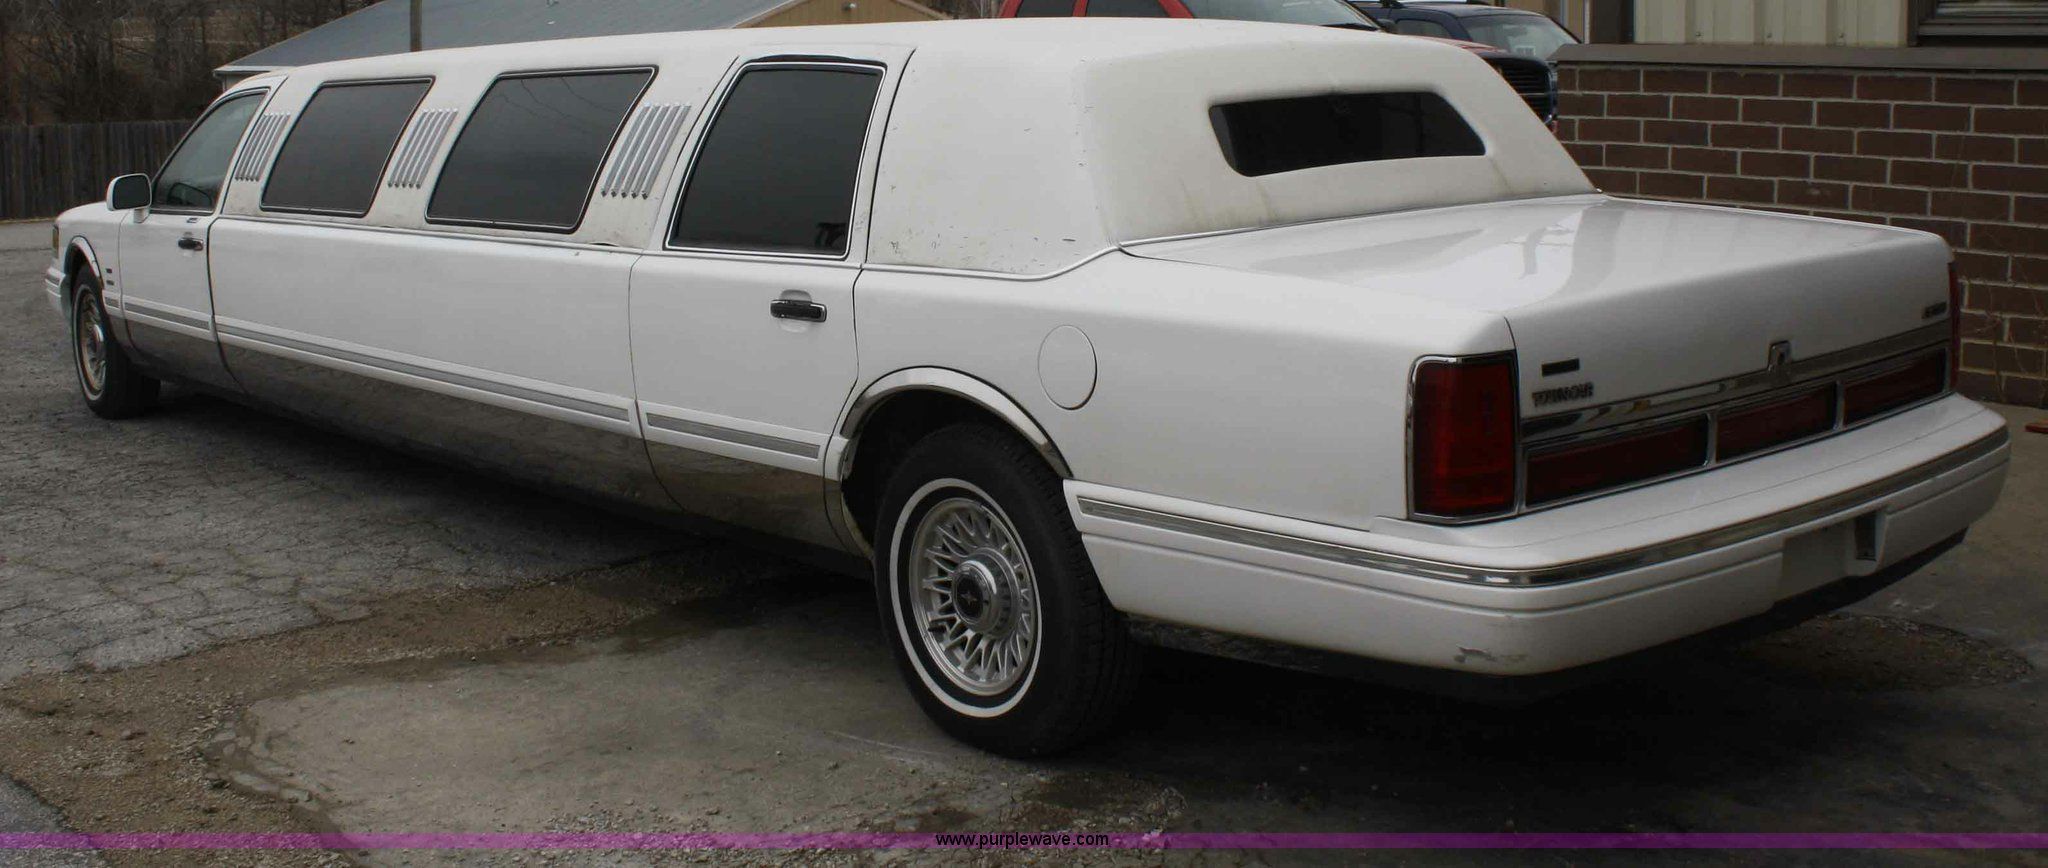 1995 Lincoln Town Car Krystal Coach 120 Stretch Limous